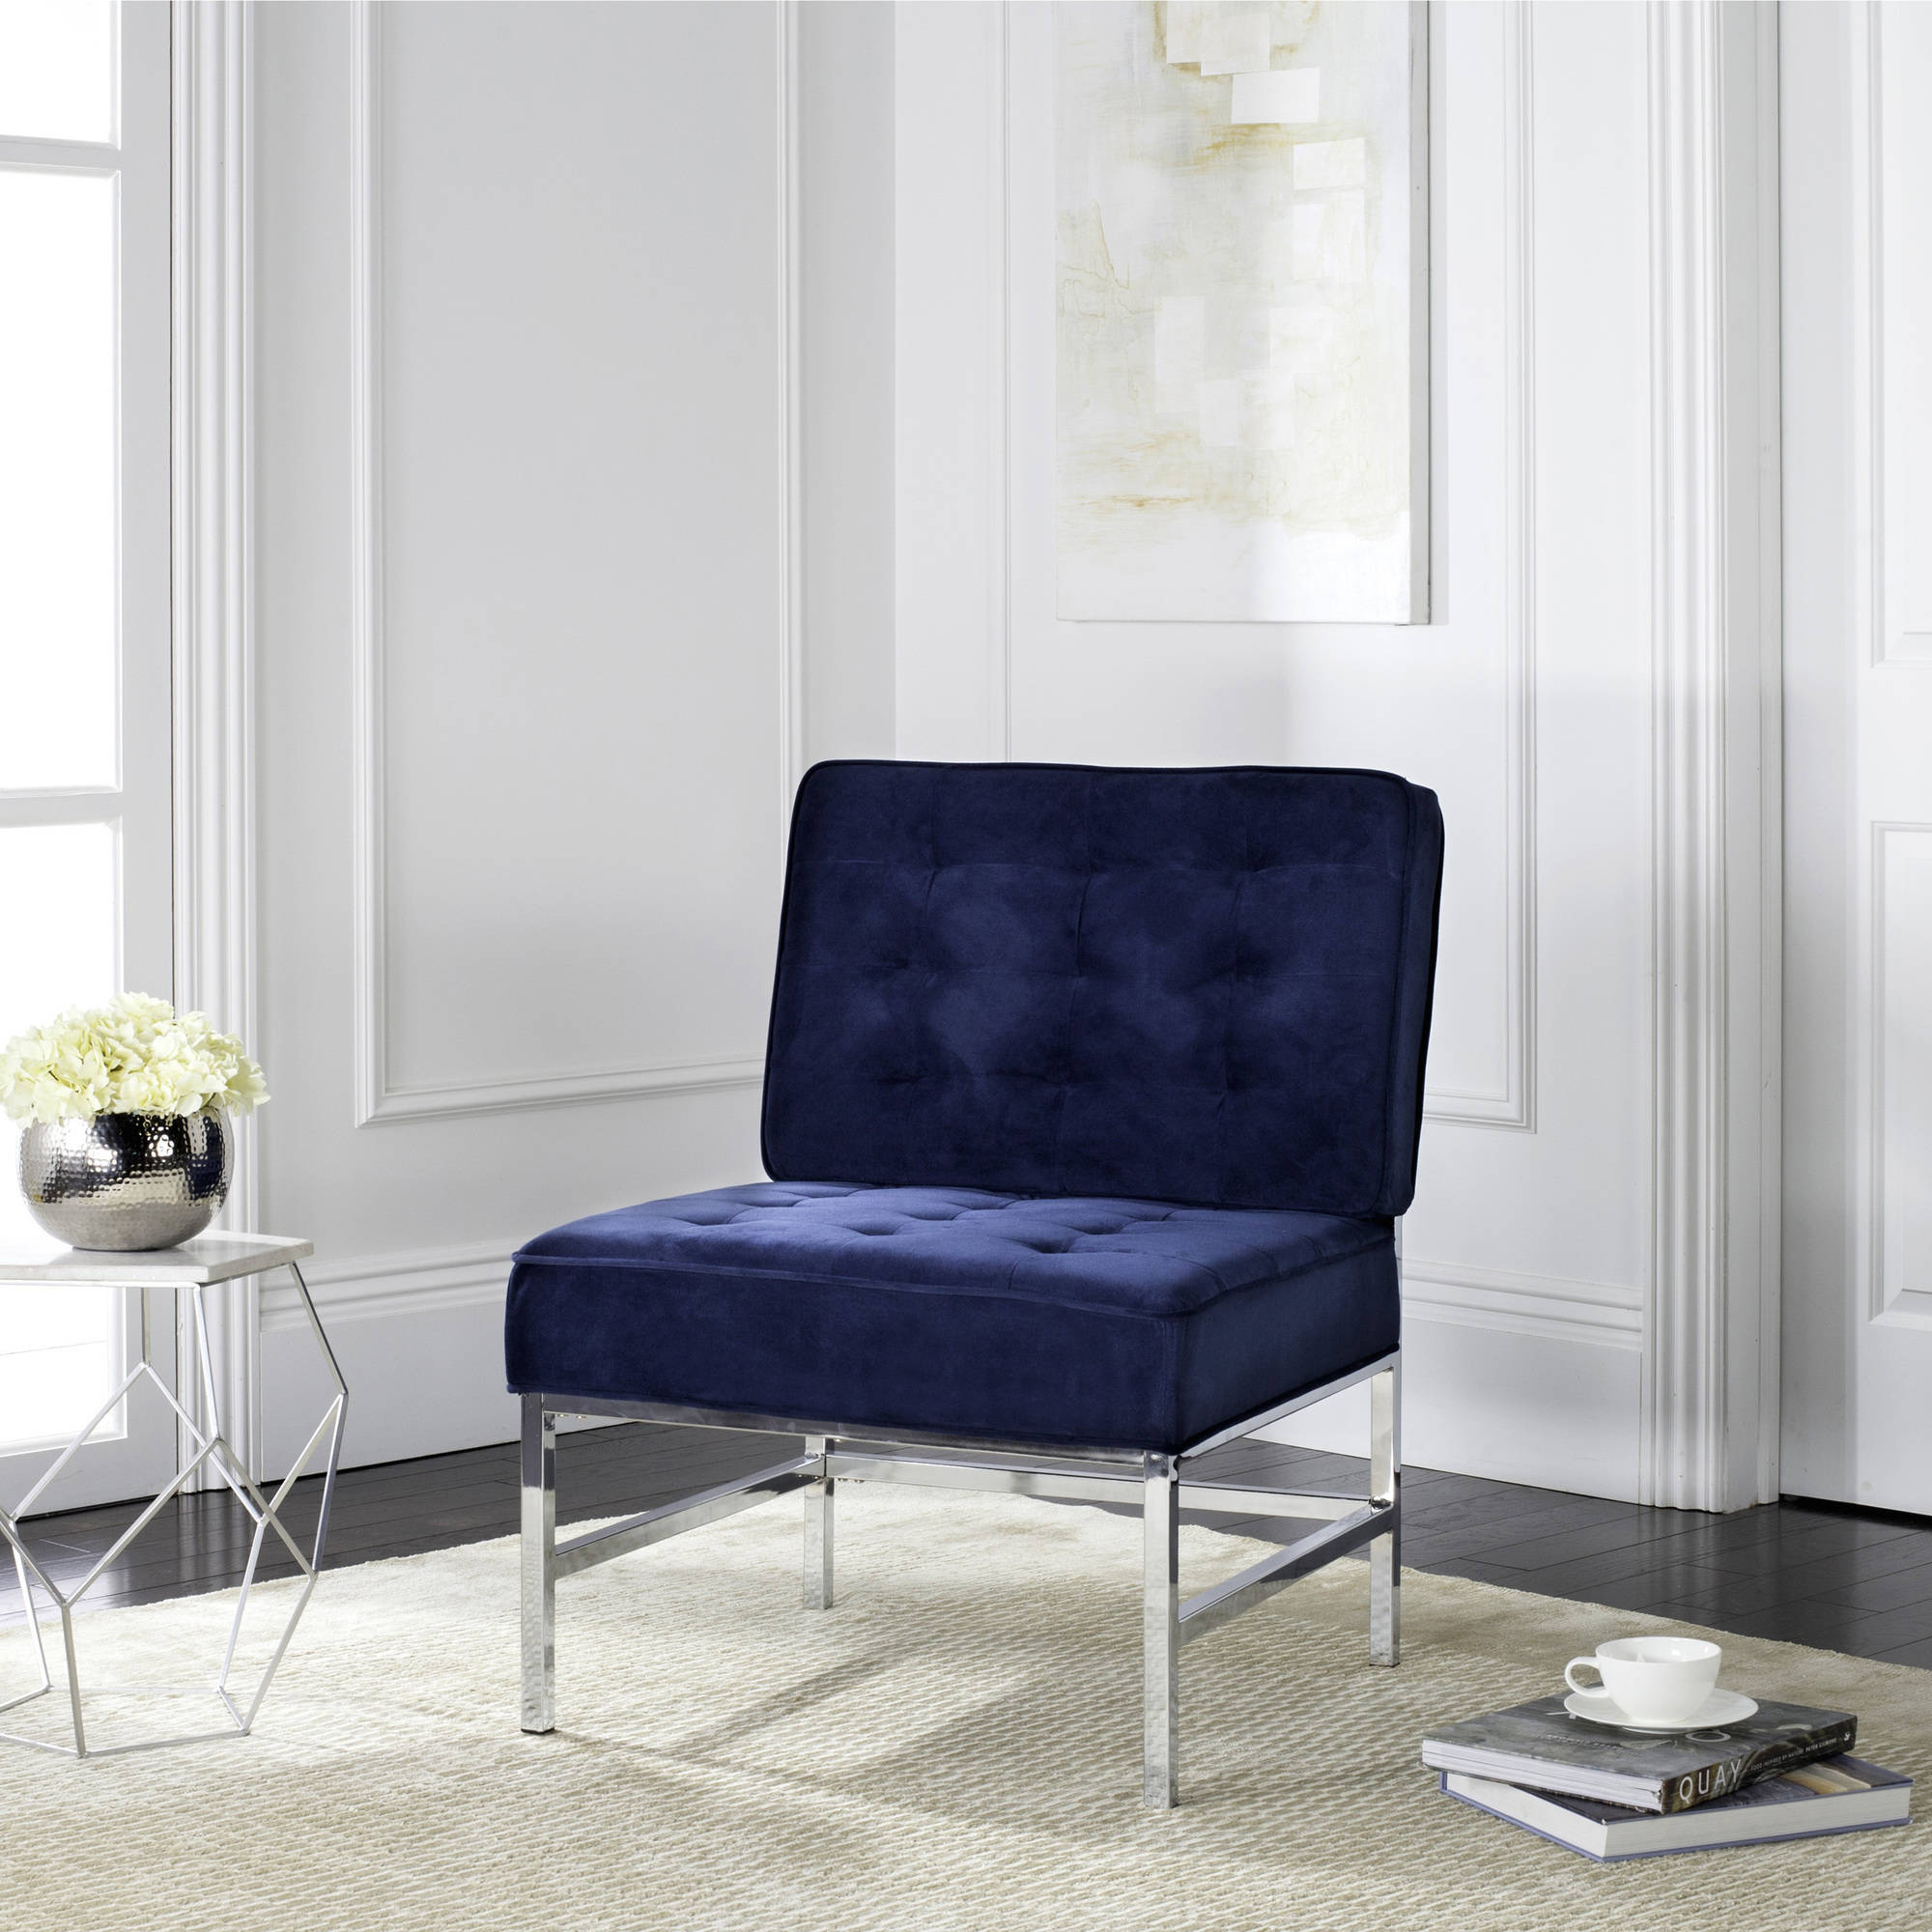 Safavieh Ansel Modern Tufted Chrome Accent Chair, Multiple Colors